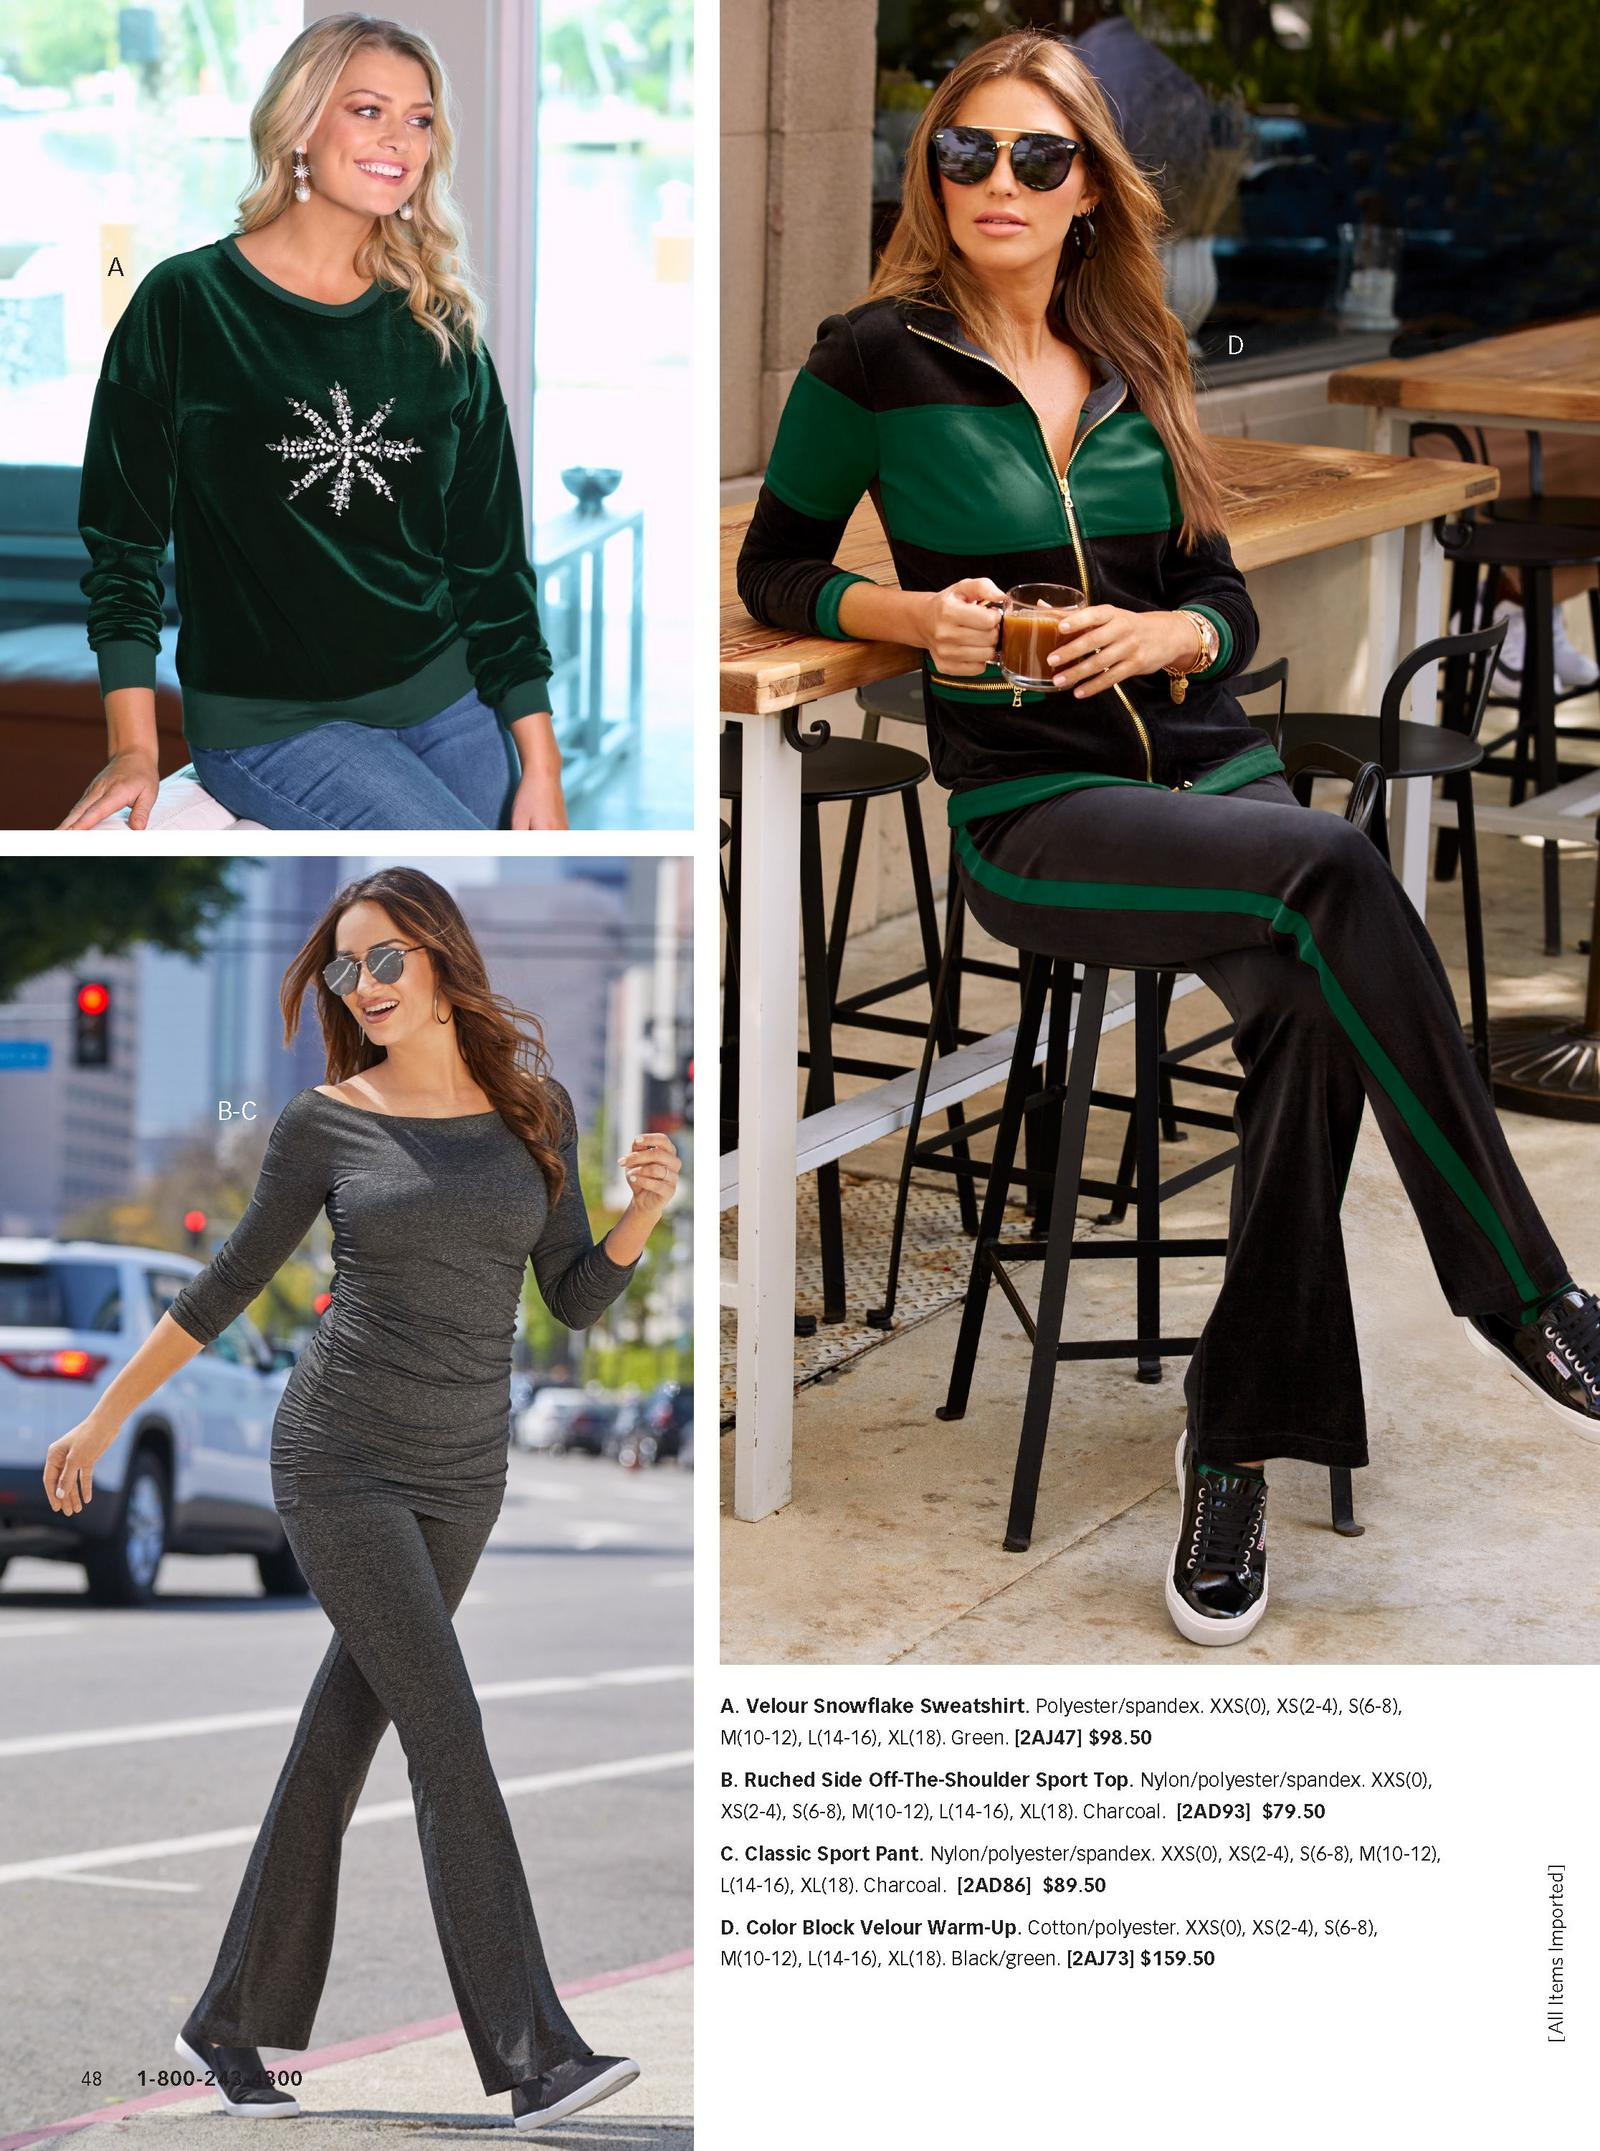 left model wearing ruched off the shoulder sport top with classic sport pant in grey. right model wearing black and green warm-up.